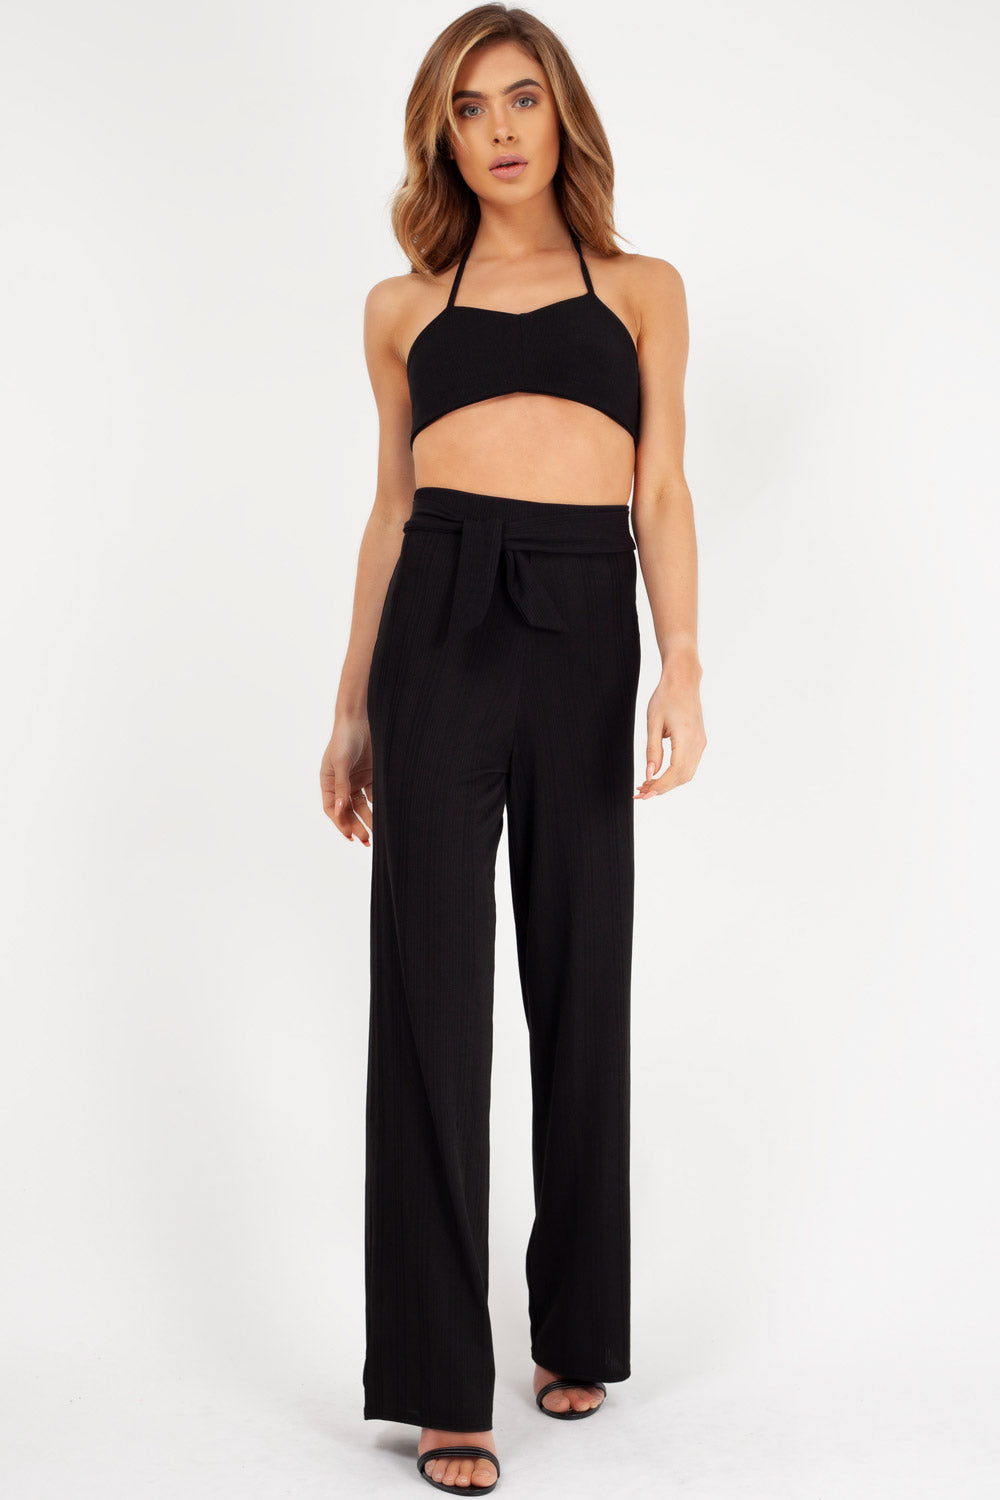 trousers and crop top two piece set uk styledup fashion